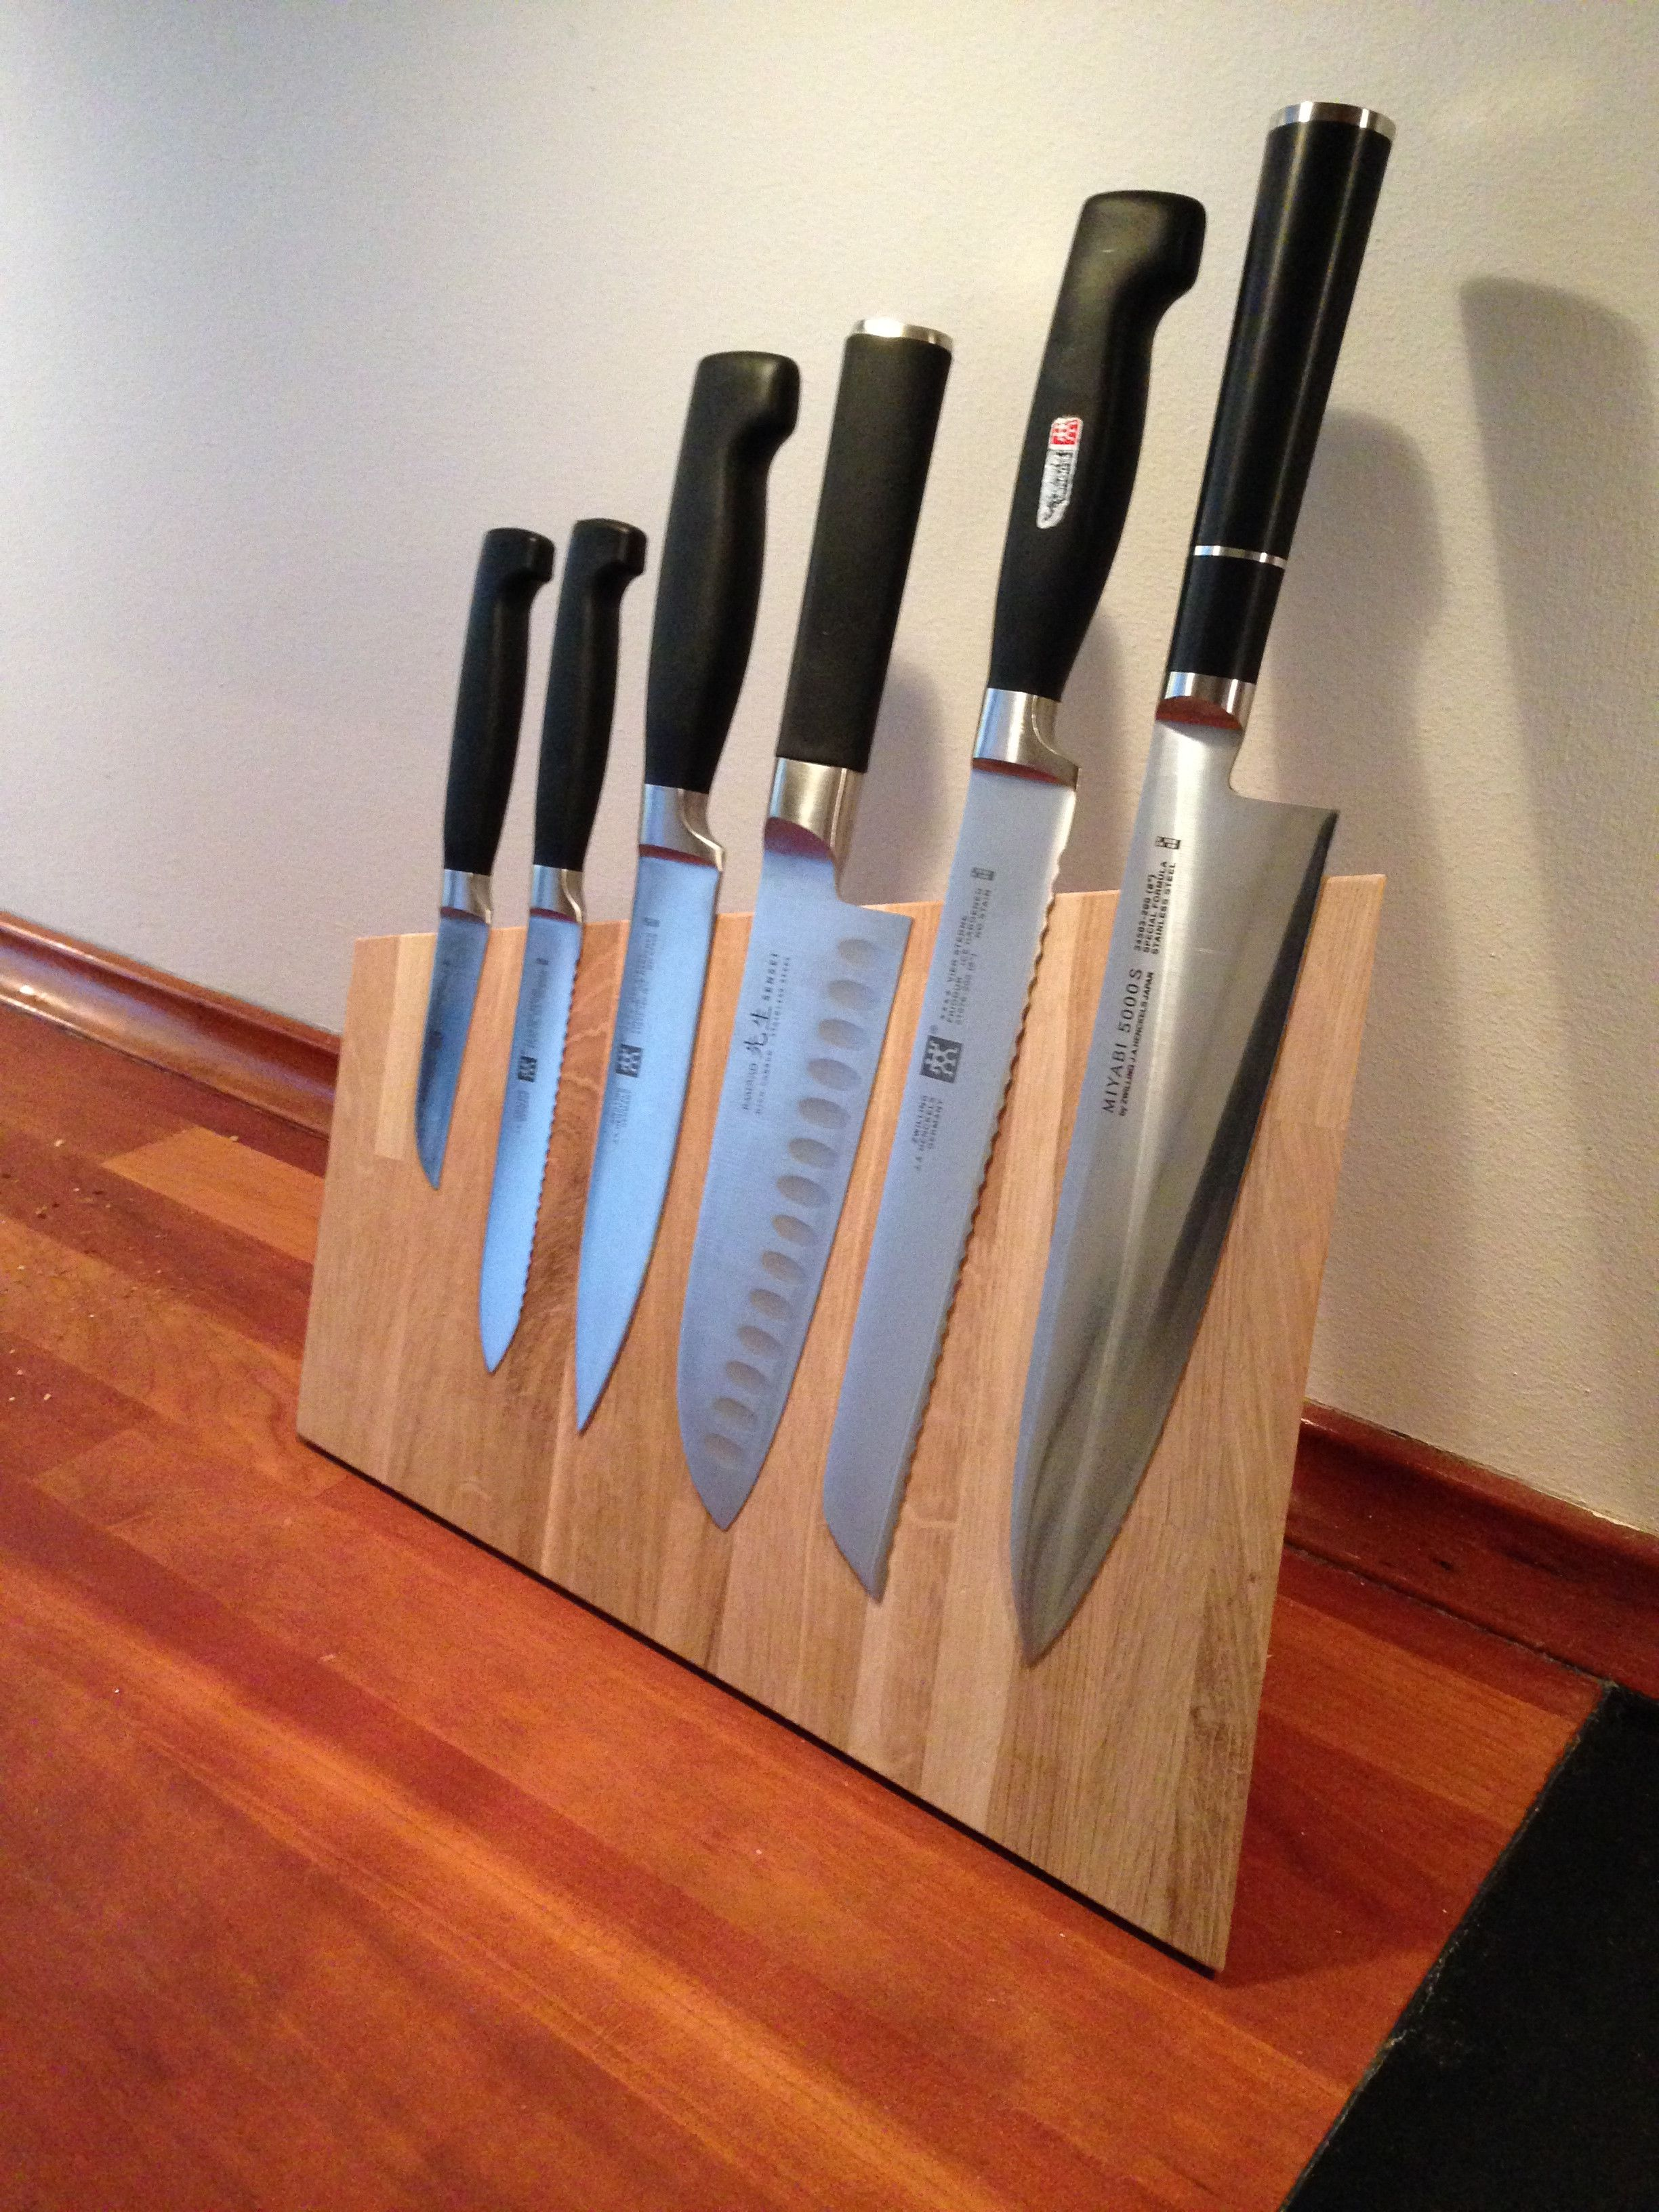 Magnetic Knife Block Magnetic Knife Blocks Kitchen Knife